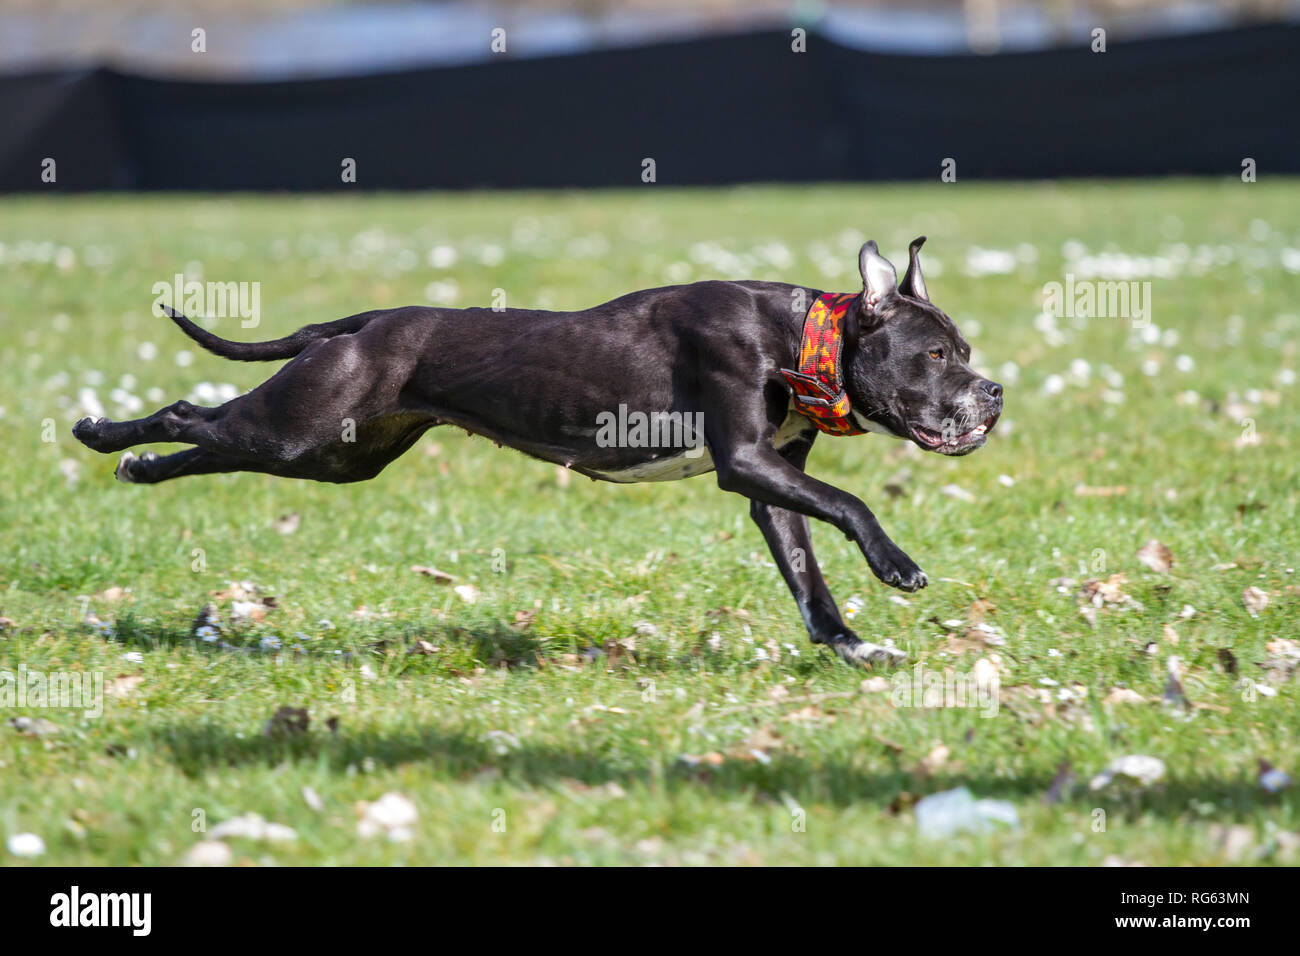 Young black American Pit Bull Terrier running the lure race on a dog sport event - Stock Image